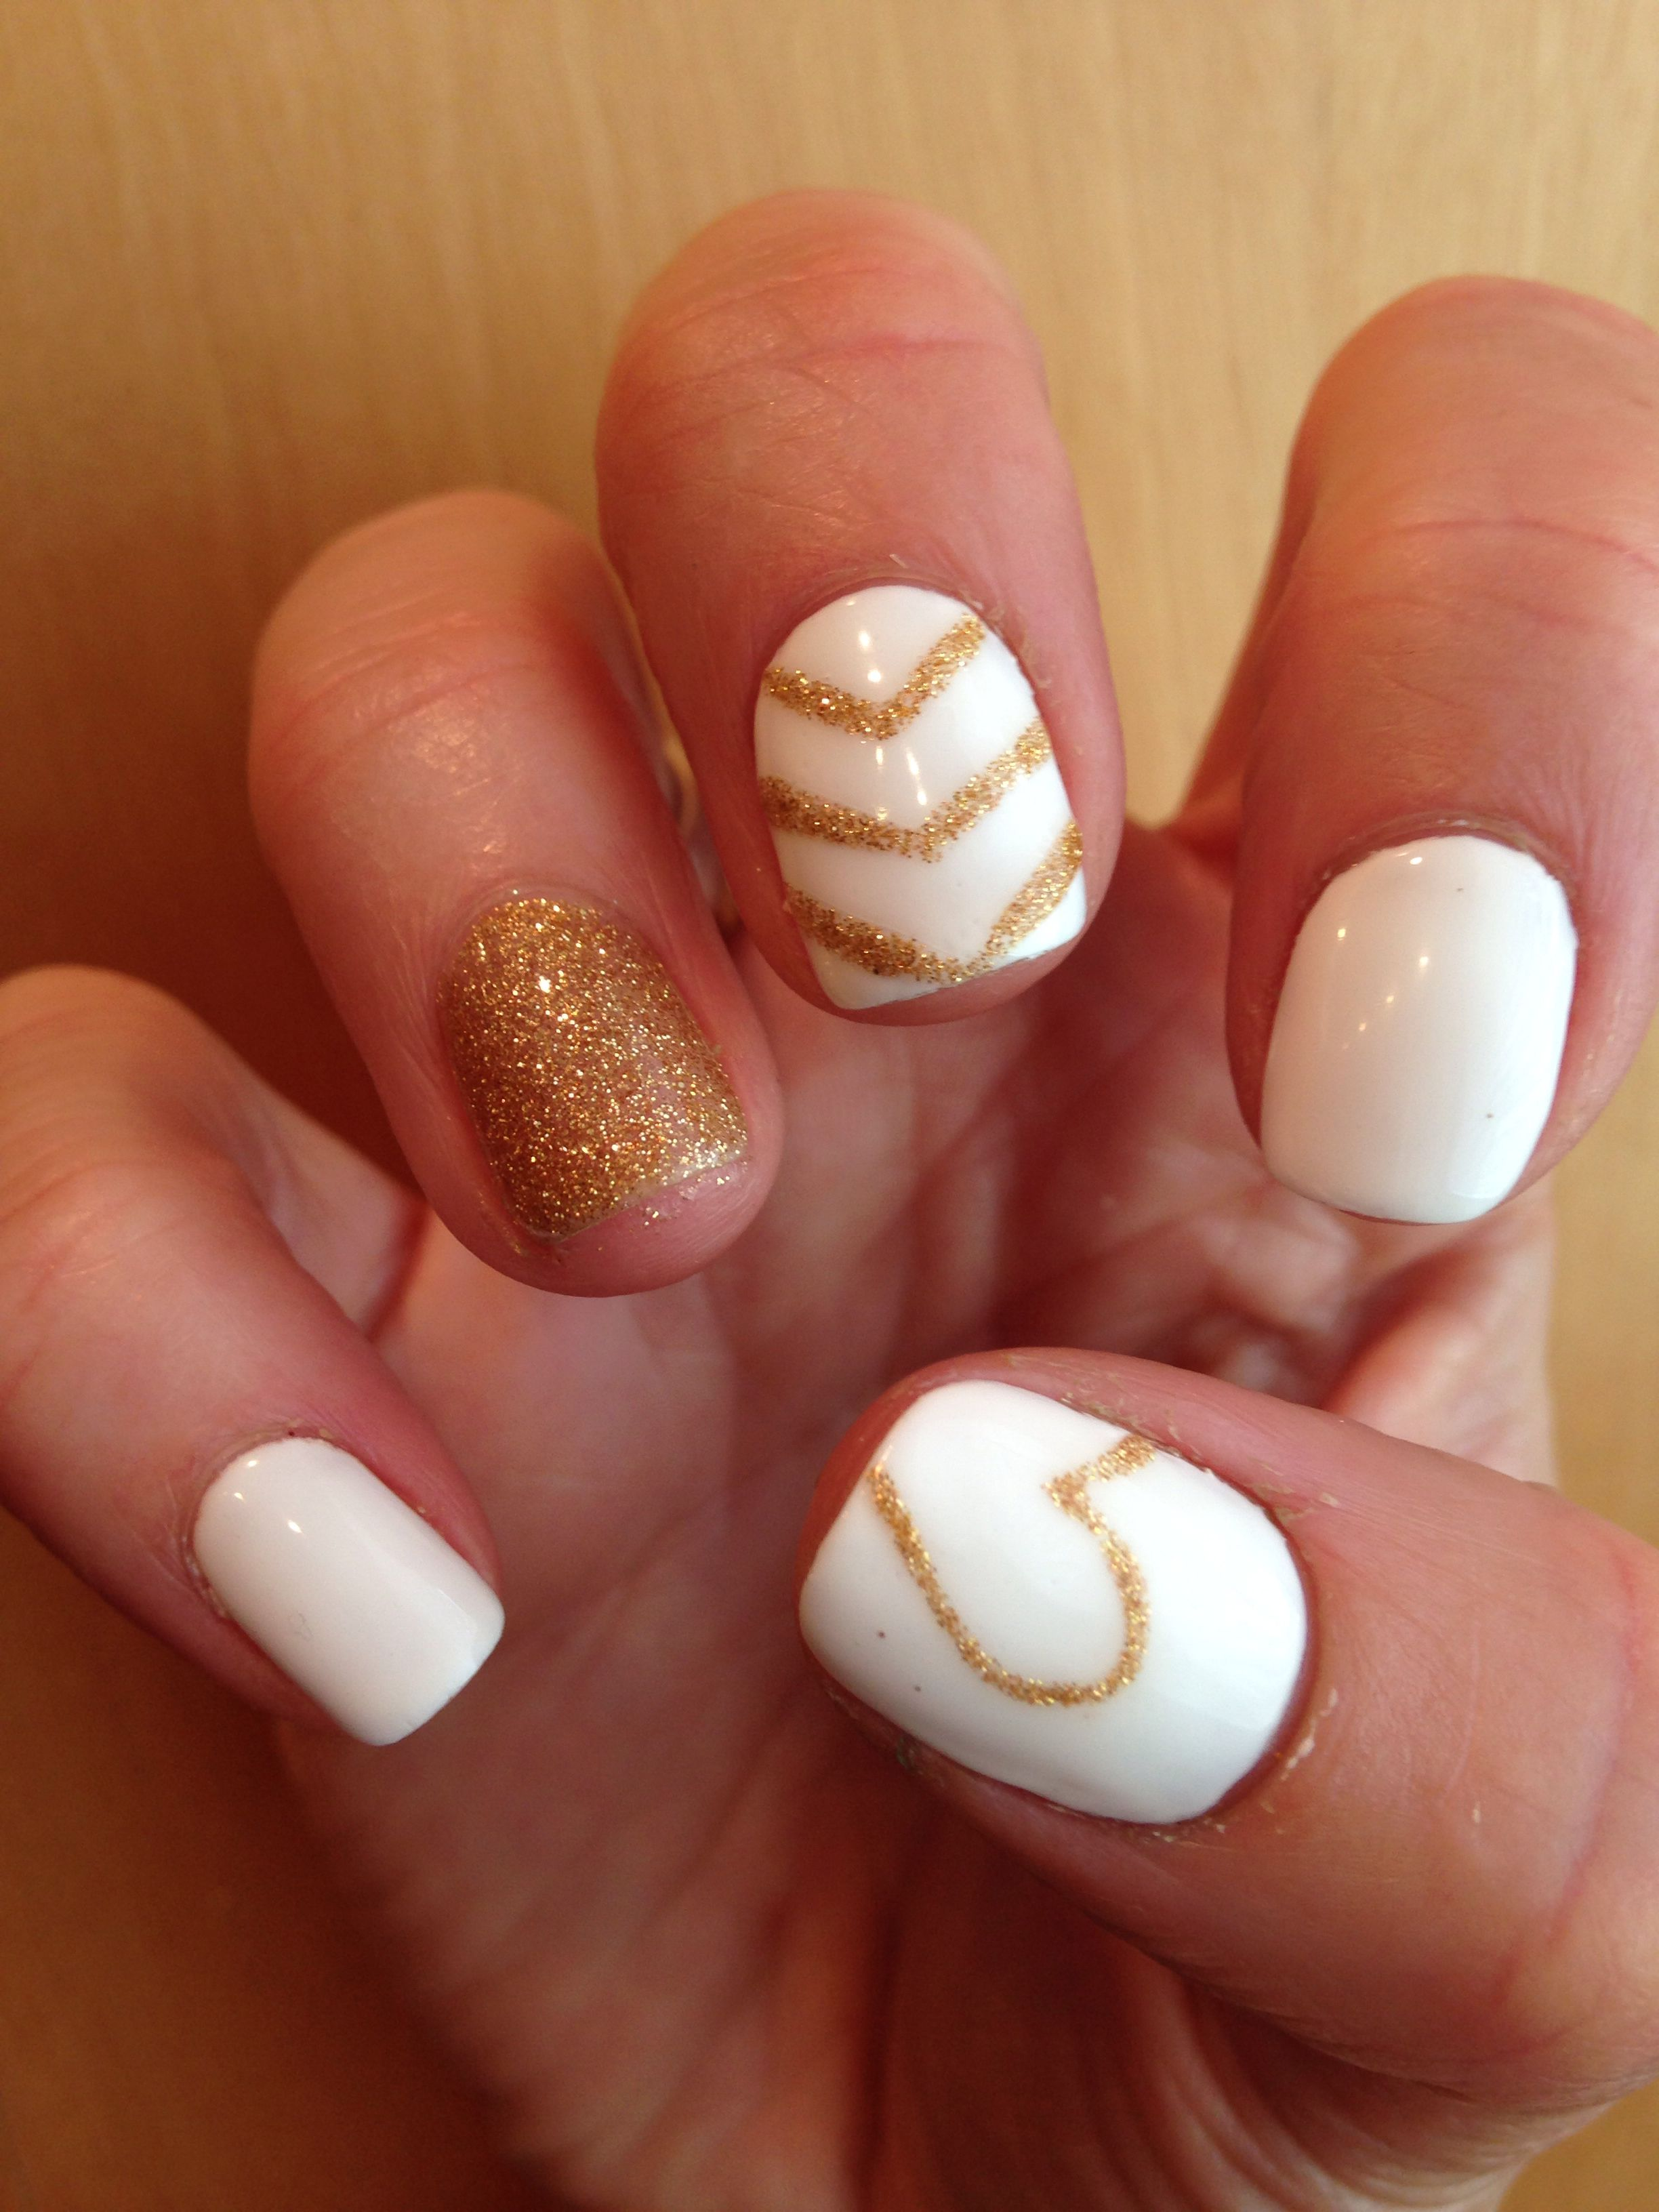 Pin By Nupur New On Fashion Nails Glitter Accent Nails White Nails With Gold Gold Nails